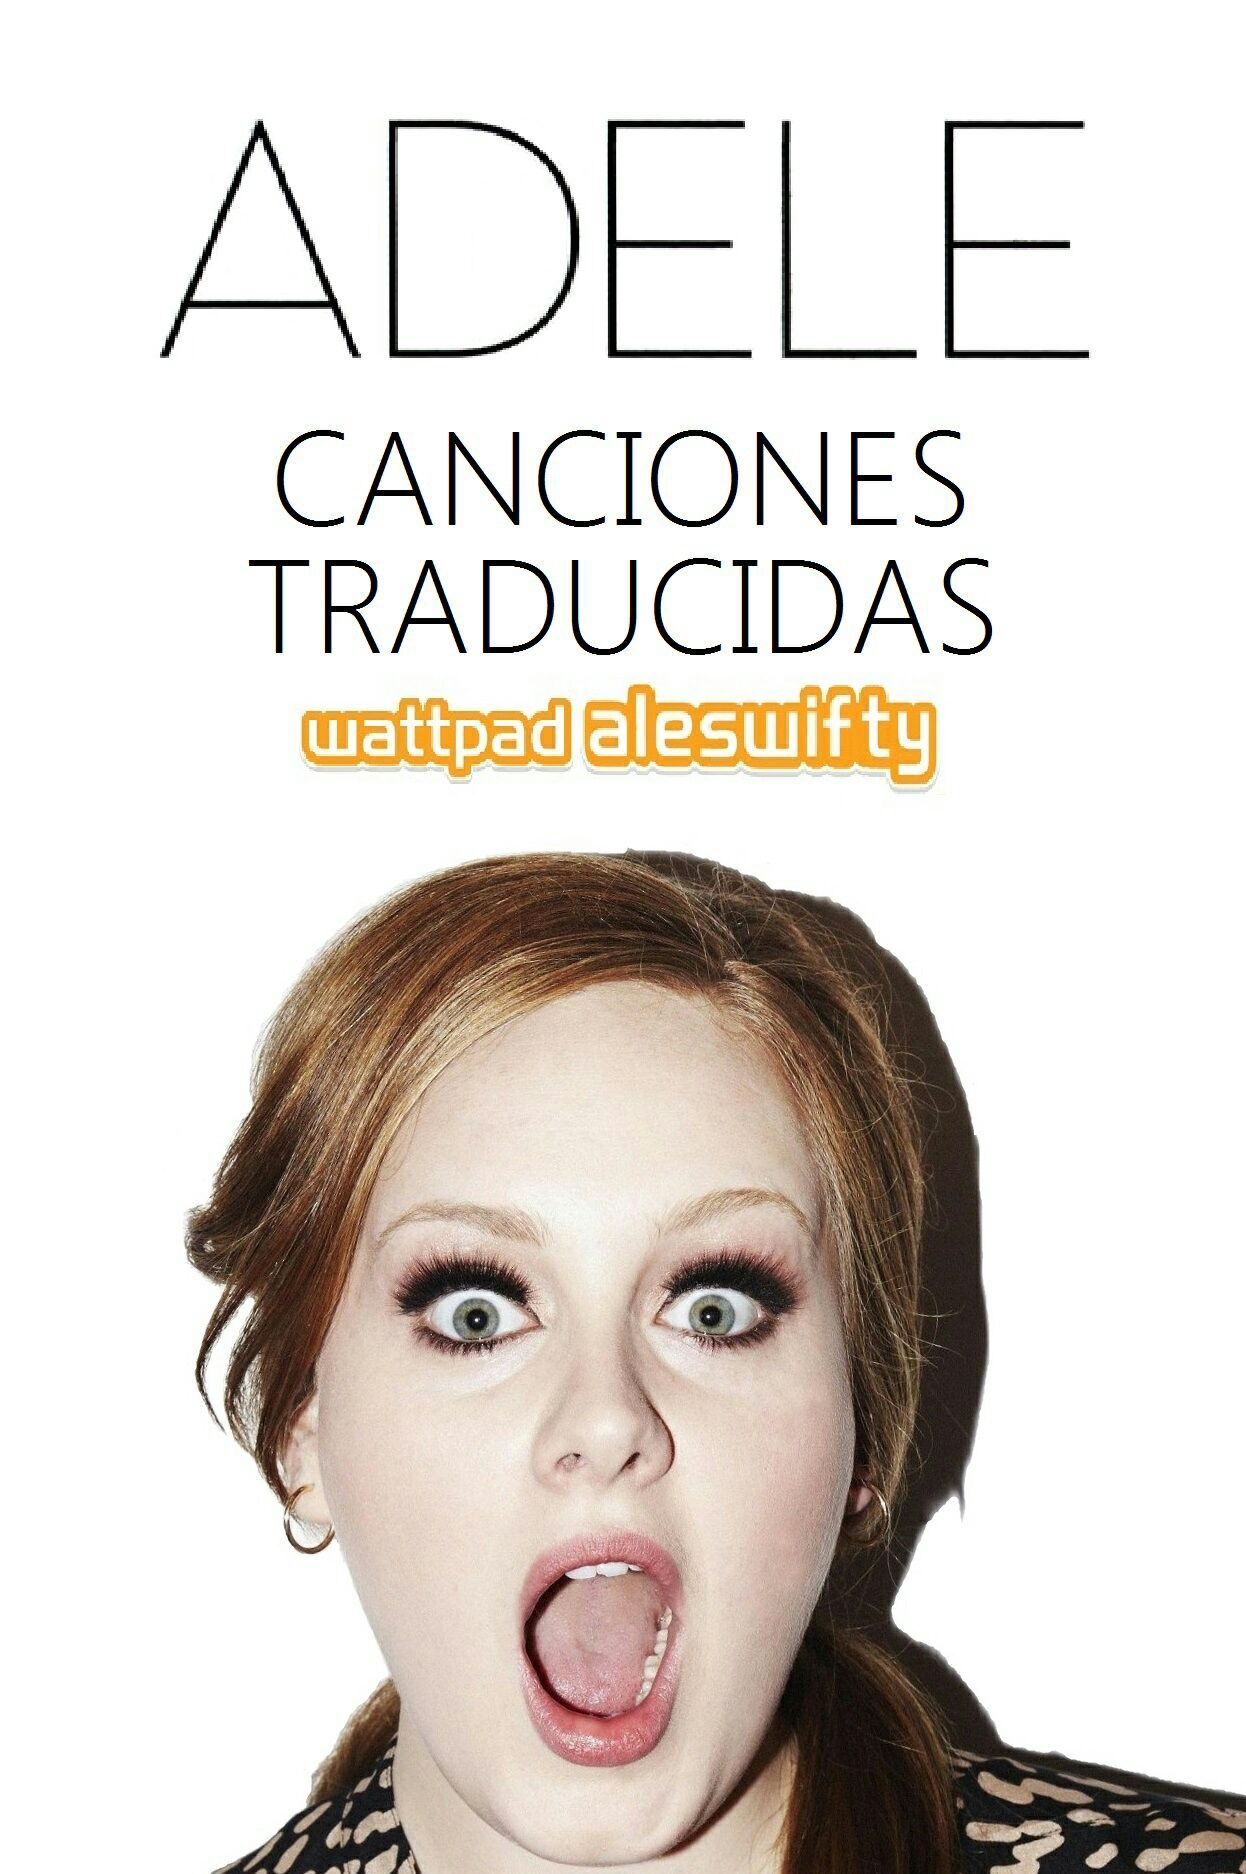 Canciones De Adele Traducidas Al Espanol Adele Hello Someone Like You